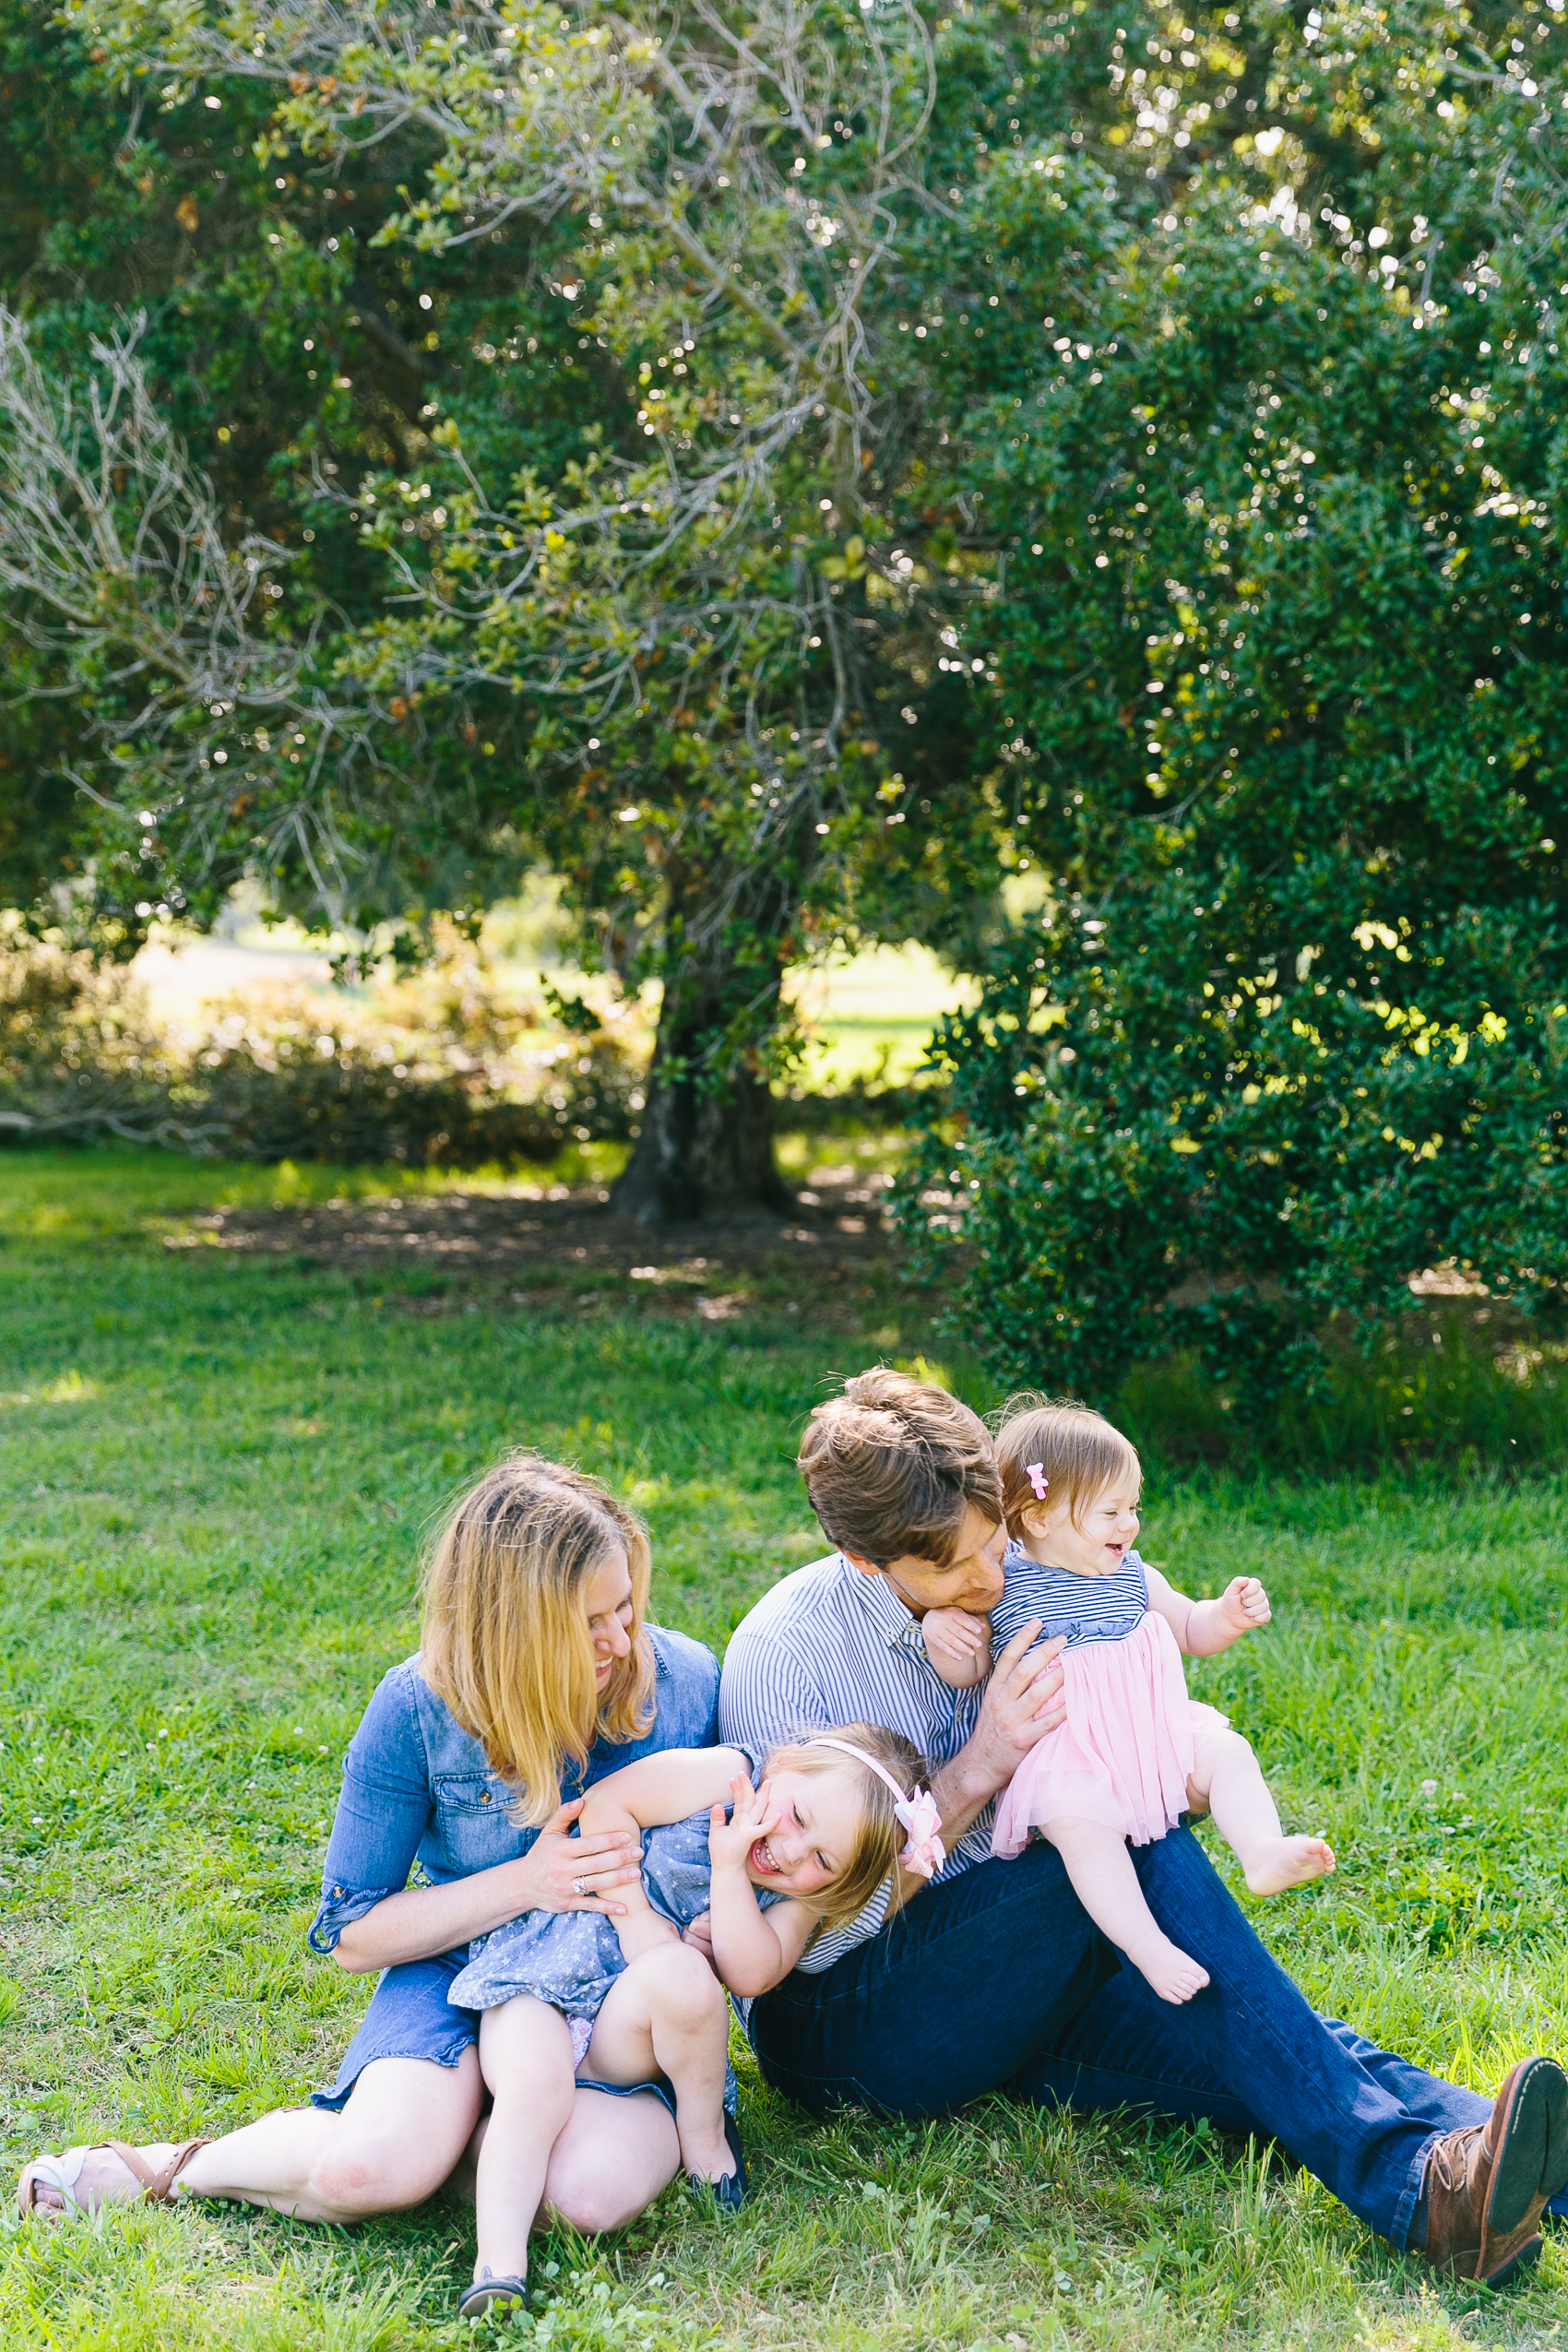 Los_Angeles_Family_Photographer_Family_Photo_Baby_Kids_Children_Southern_California-0656.jpg